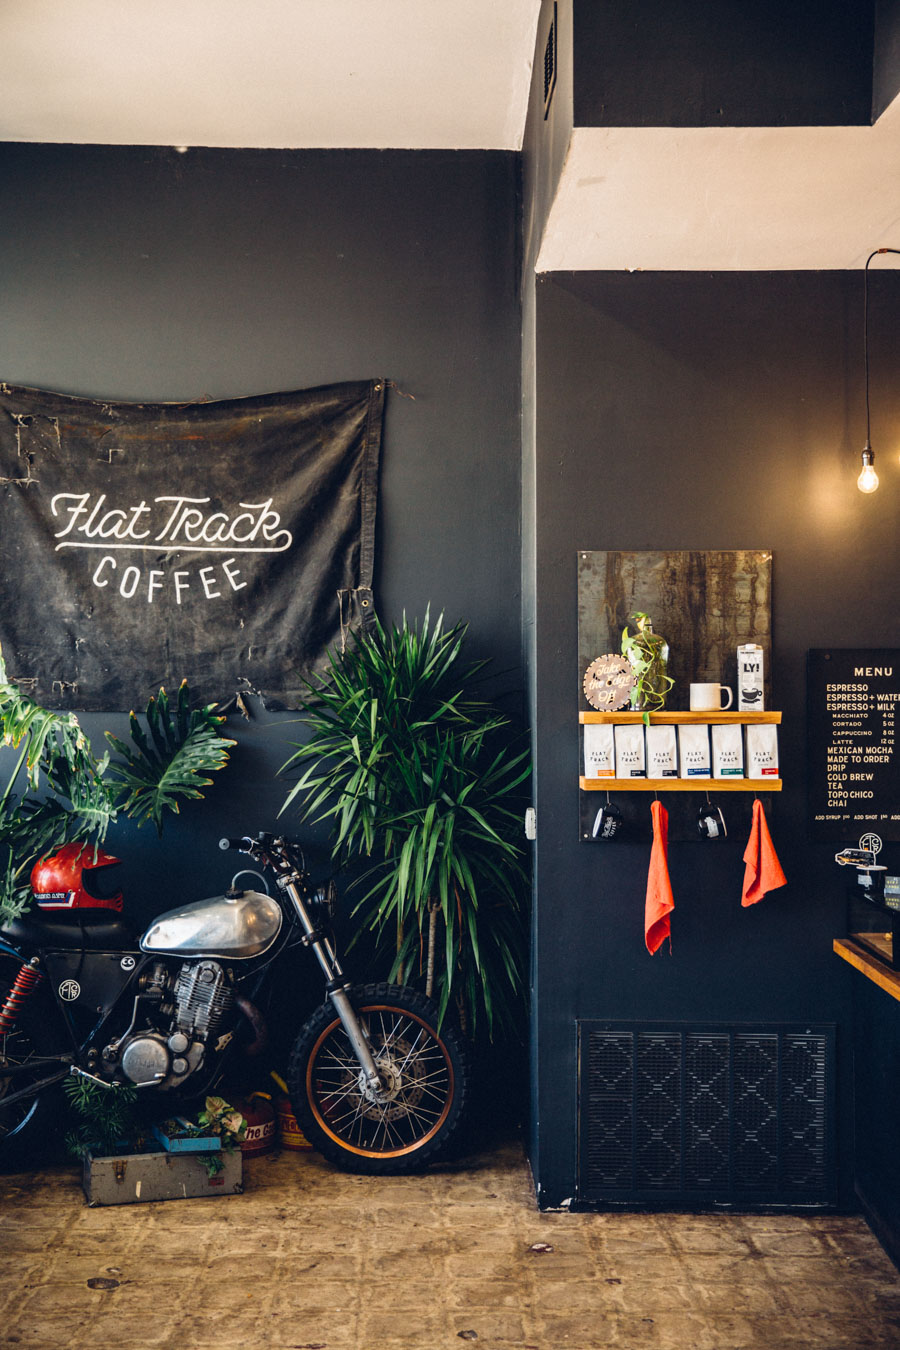 Flat Track Coffee, Austin, Texas